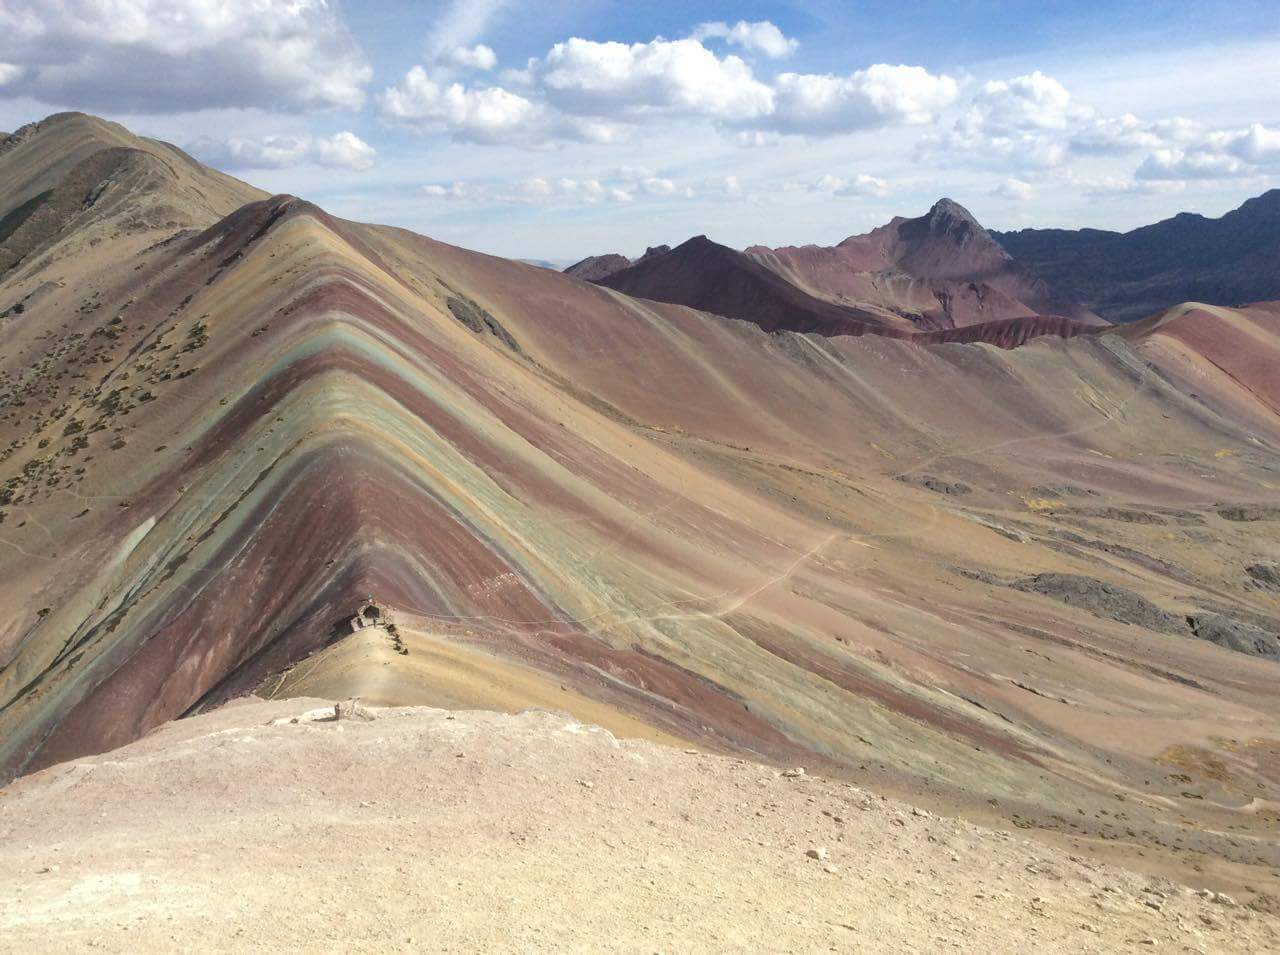 rainbow mountain, rainbow mtn, rainbow mountain peru, rainbow mountain trek, rainbow mountain trek peru, peru rainbow mountain trek, kb tambo, kb tours, rainbow mountain tour, rainbow mountain tour peru, rainbow mountain tour cusco